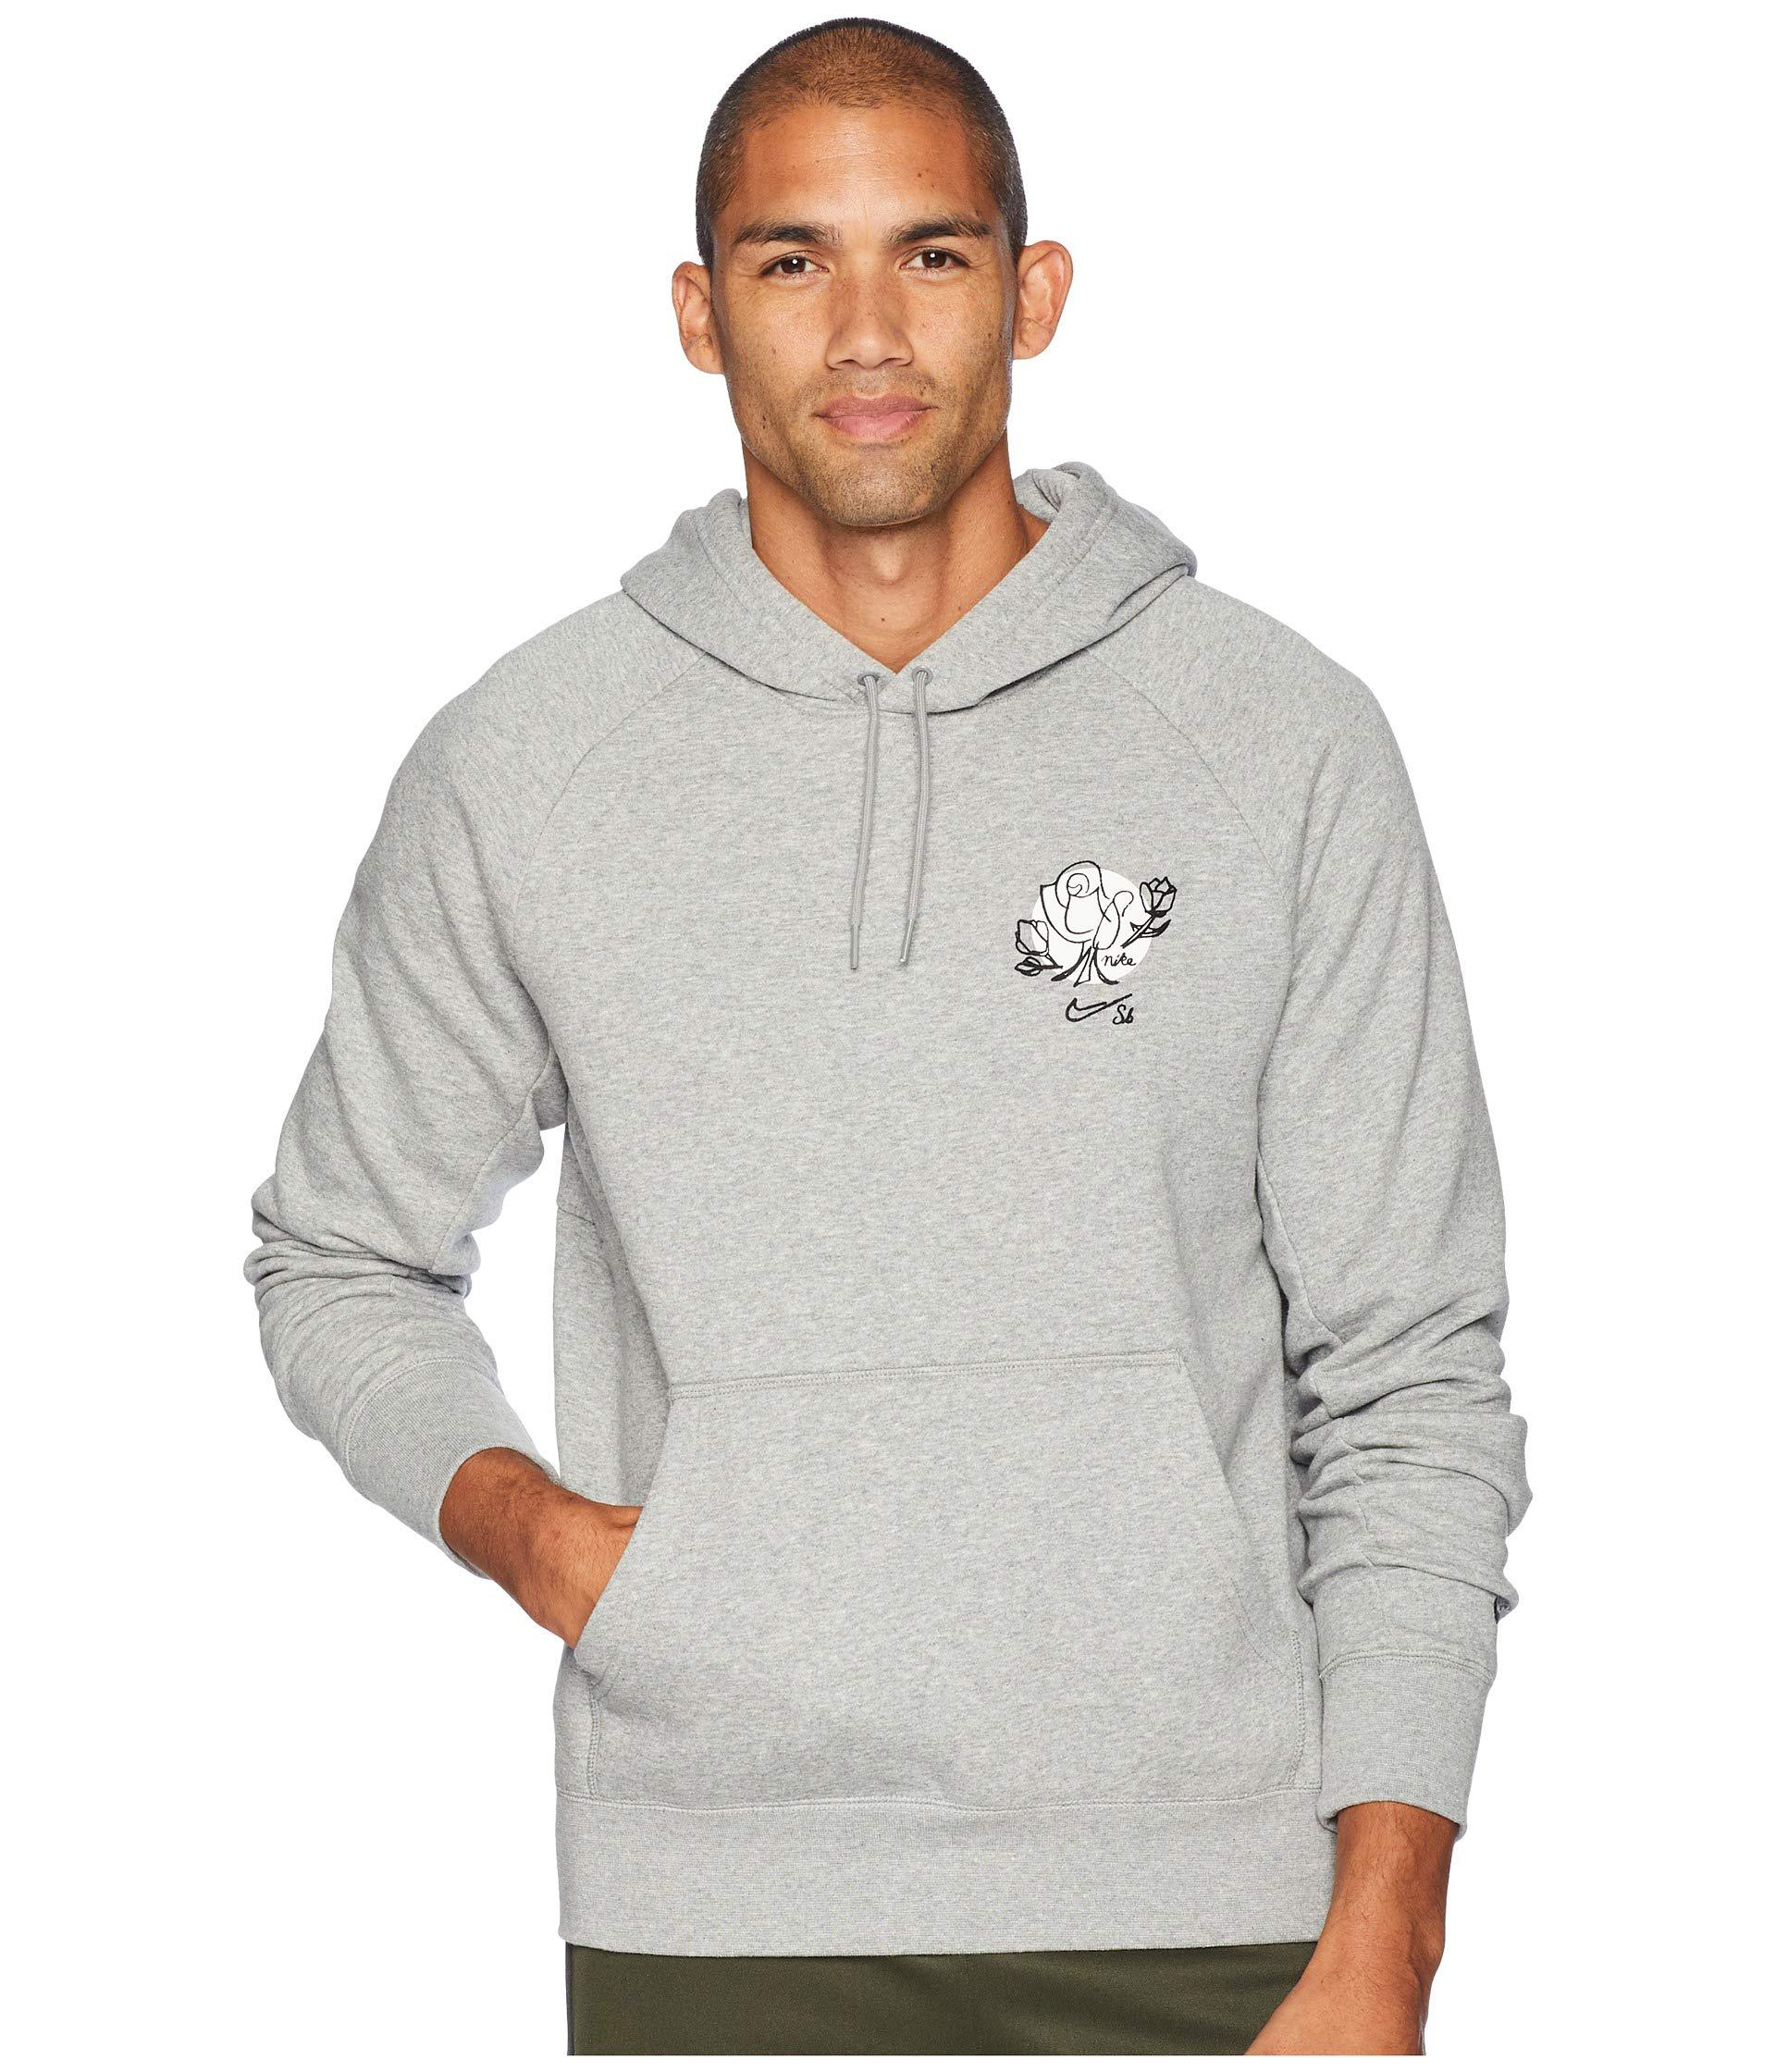 a4b4e7d9bd51 Lyst - Nike Sb Icon Pullover Floral Hoodie (black white yellow Ochre ...